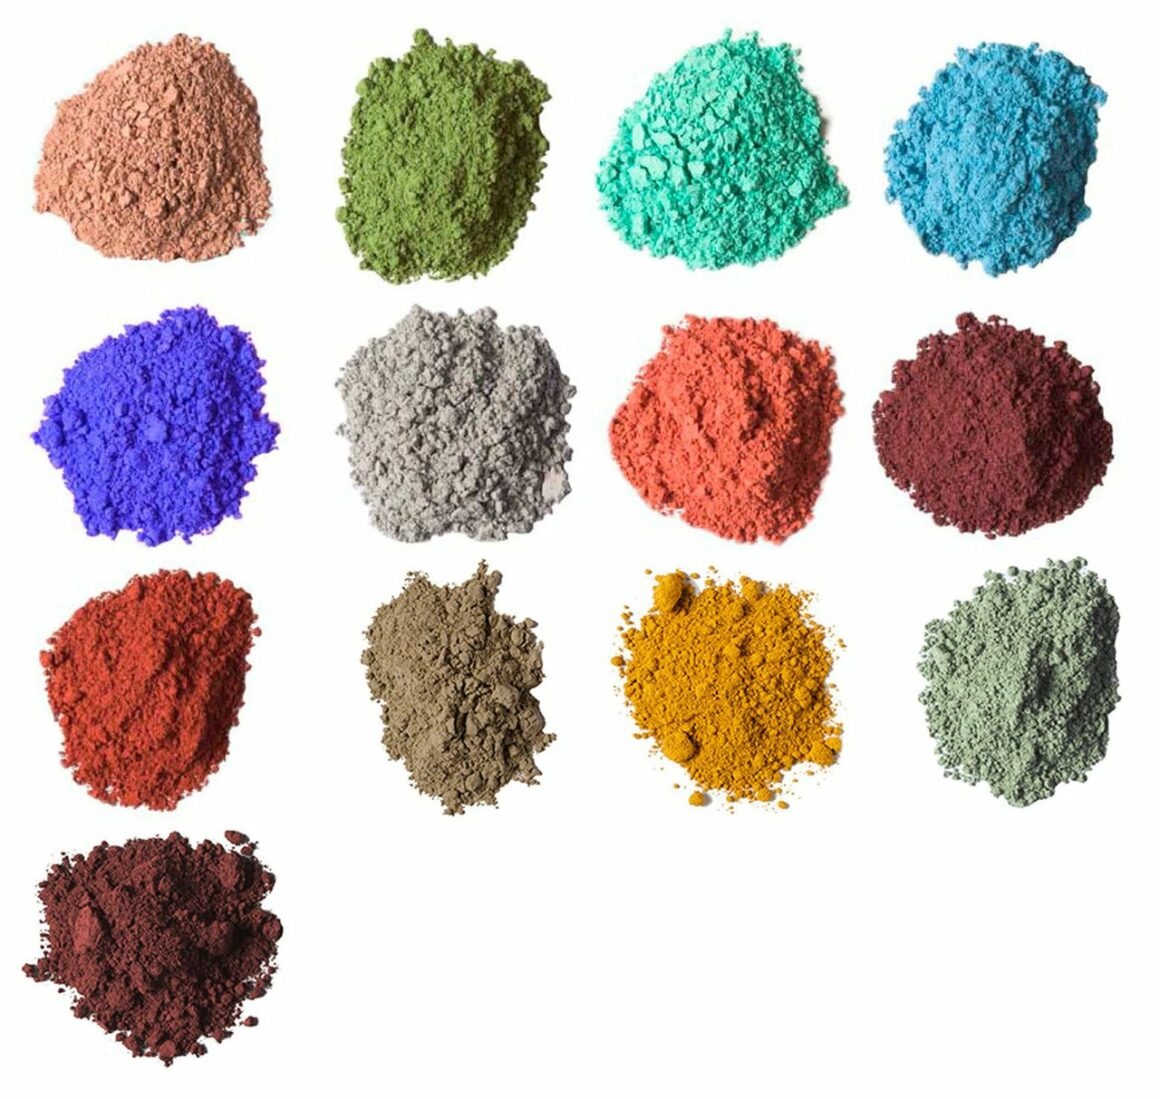 Best Eco-Friendly Paints for a Non-Toxic Home - Earth Pigments